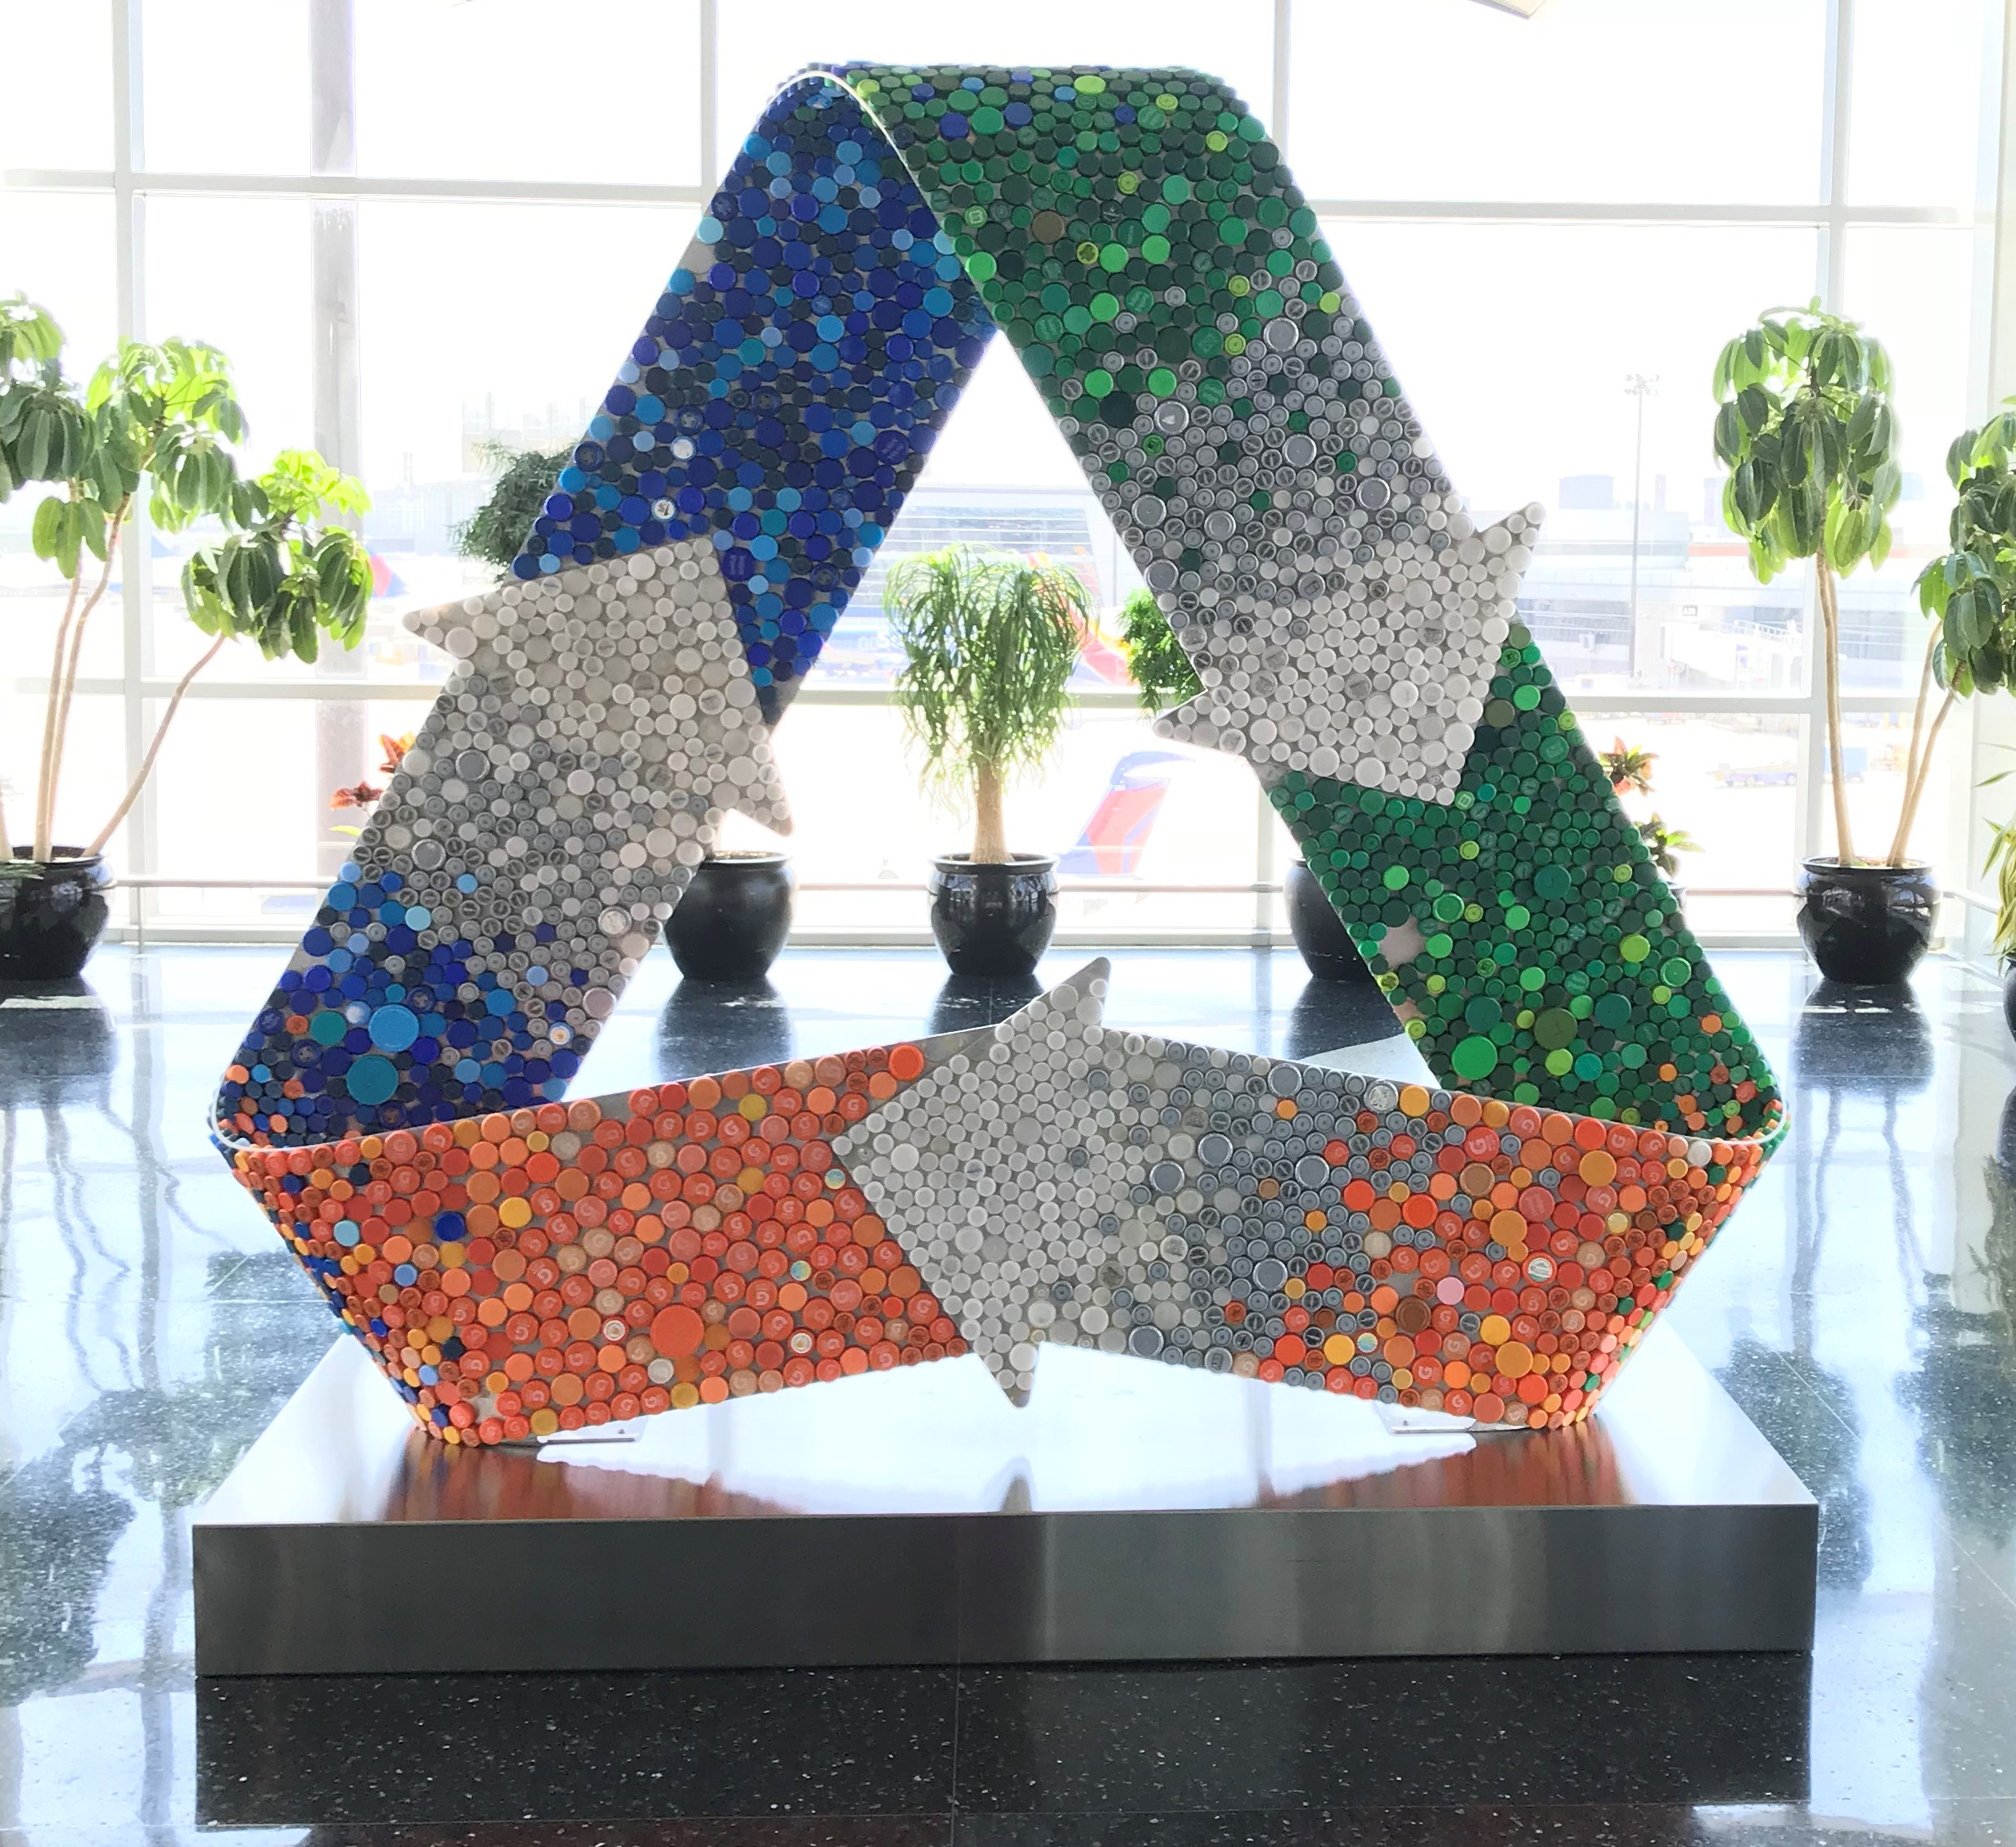 Recycle Symbol in Bottlecaps